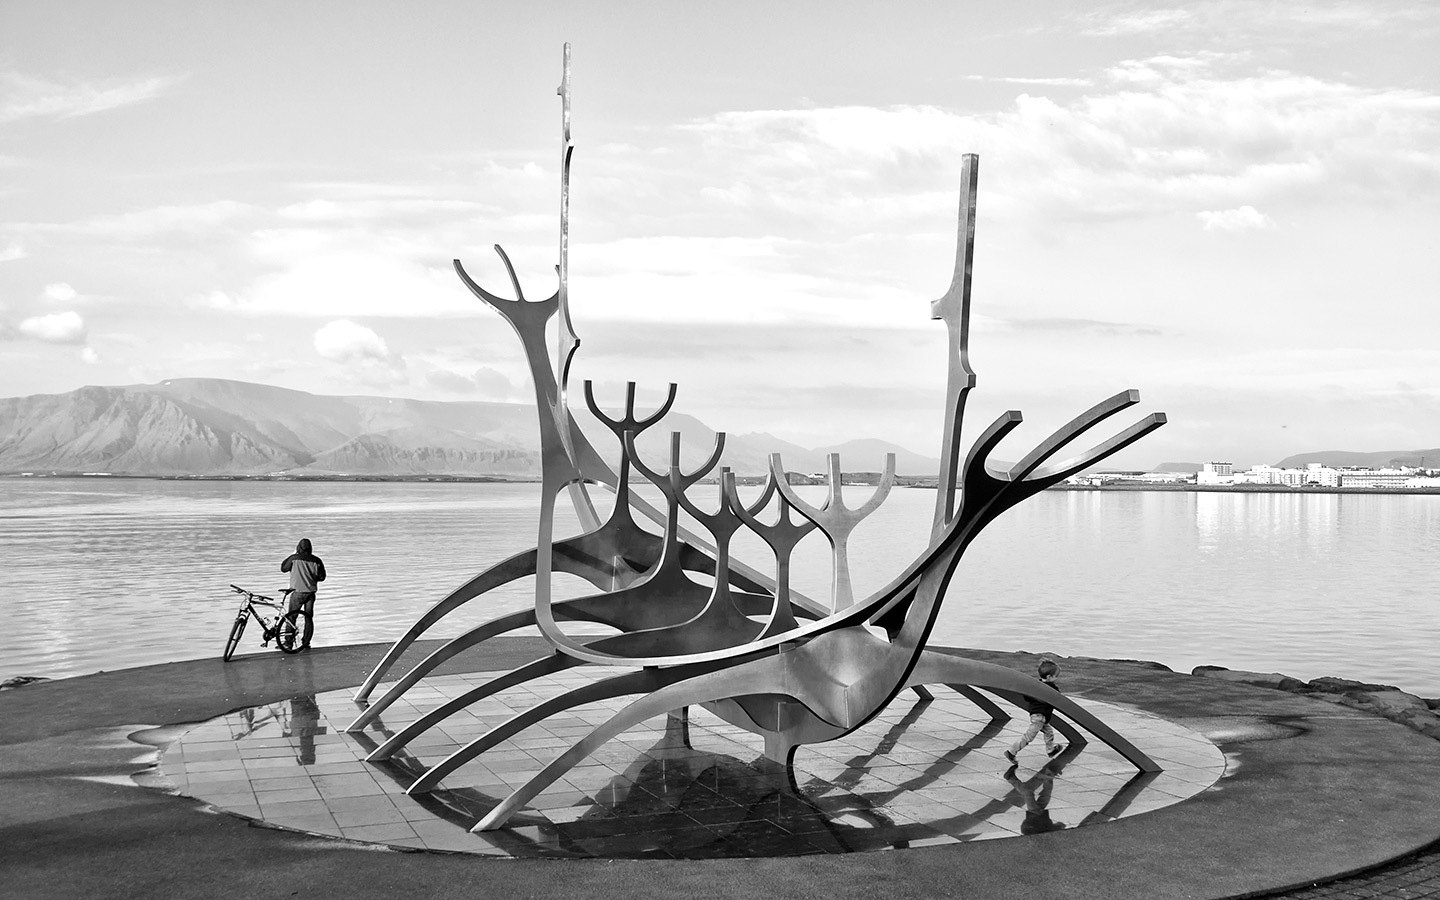 The Sun Voyager or Sólfar sculpture in Reykjavik, Iceland